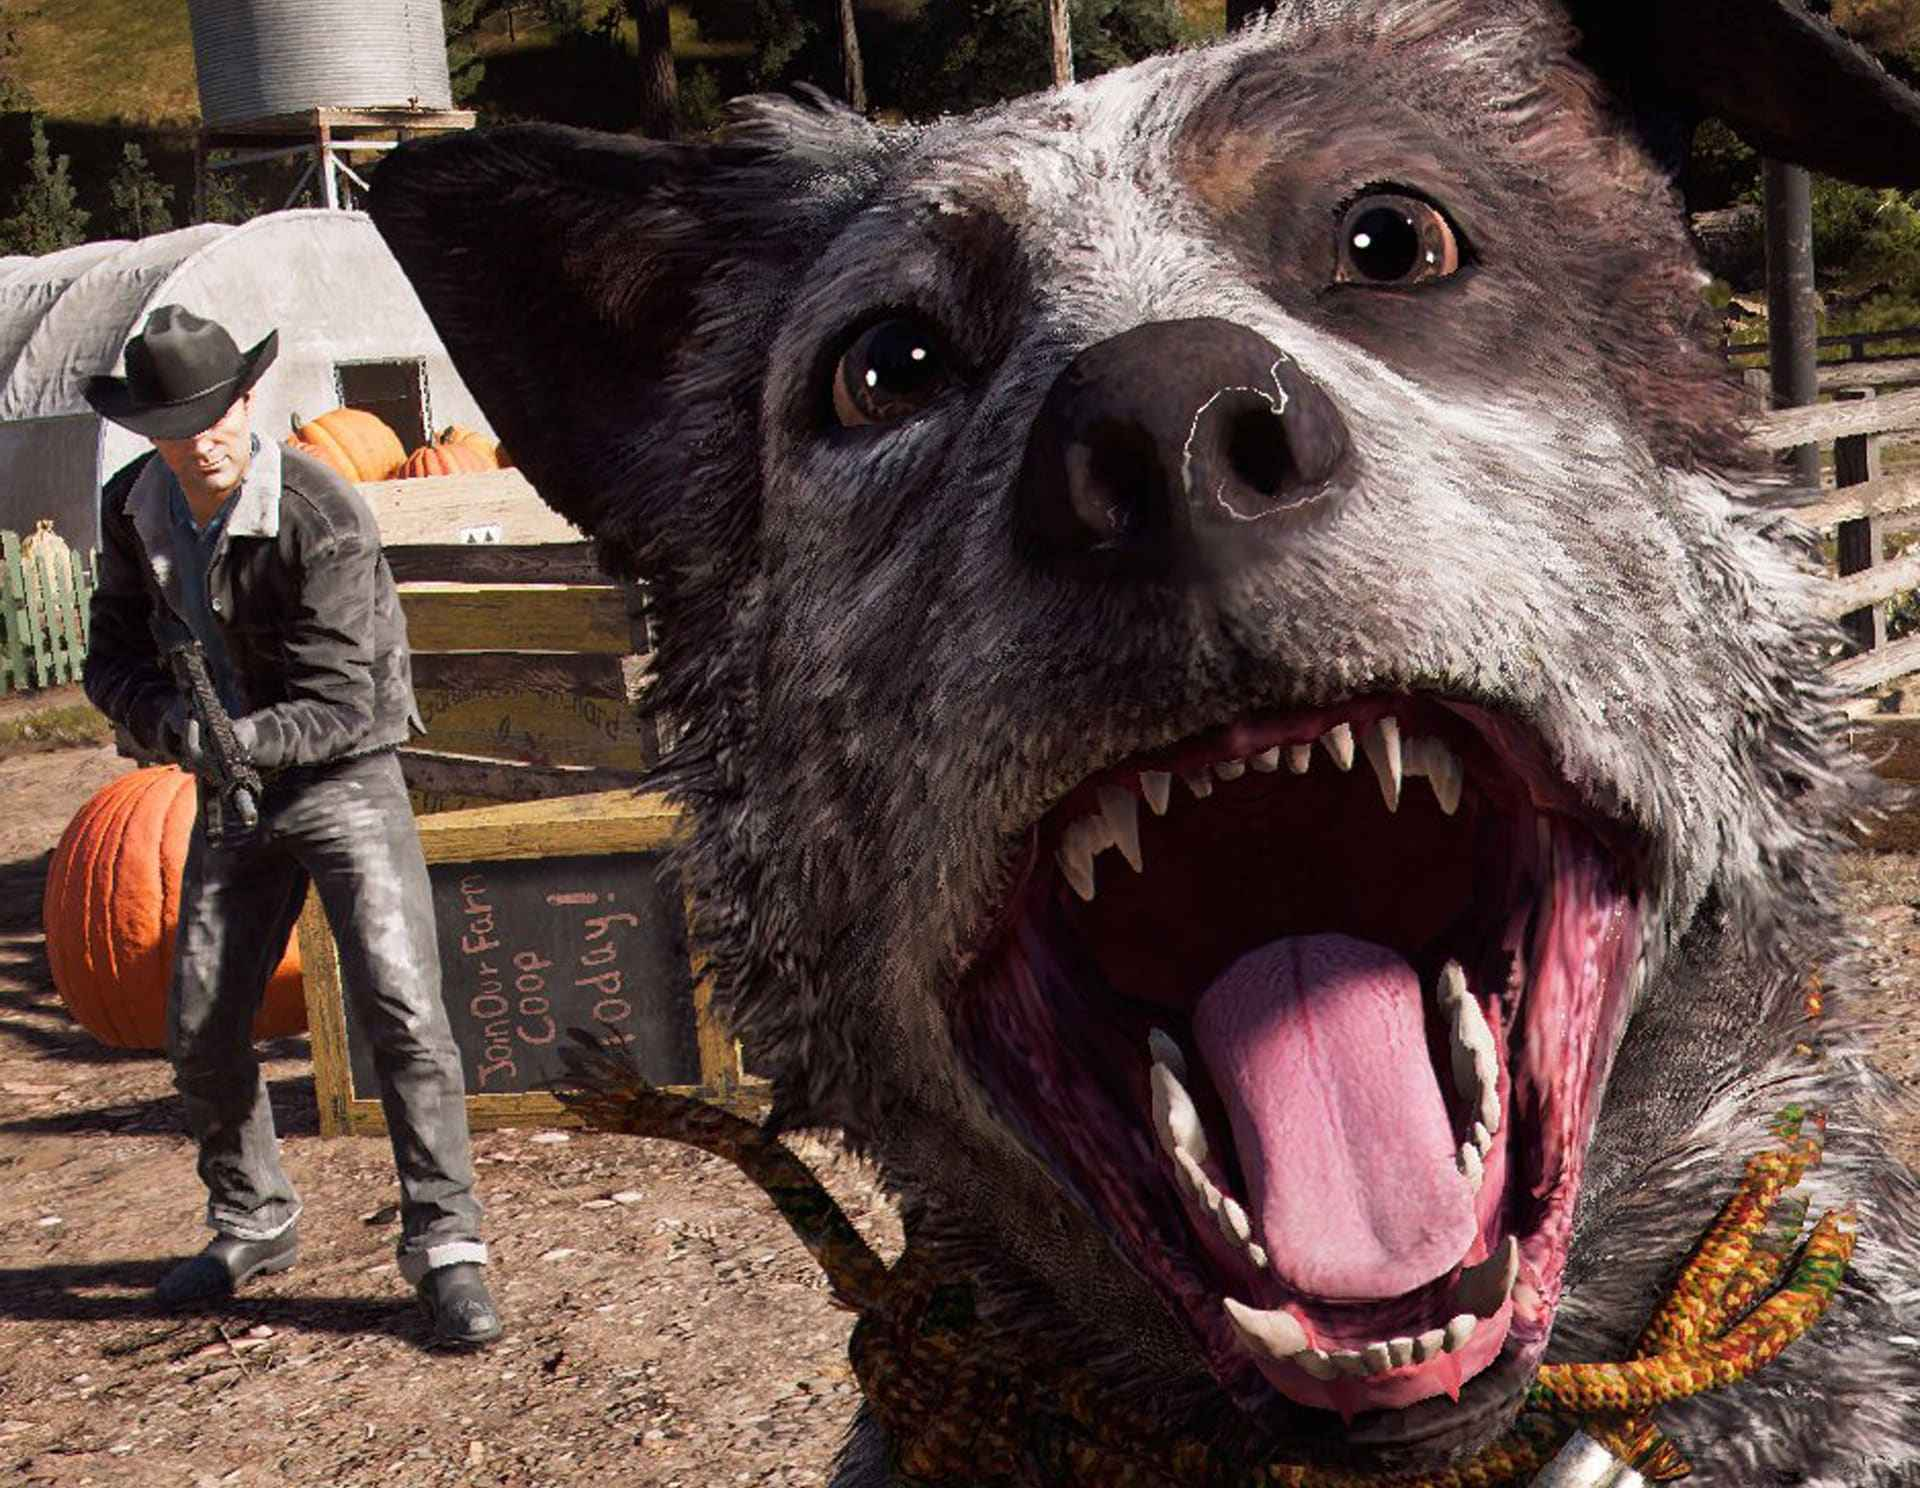 Far Cry 5 Photo Mode Introduced as Part of Latest Update